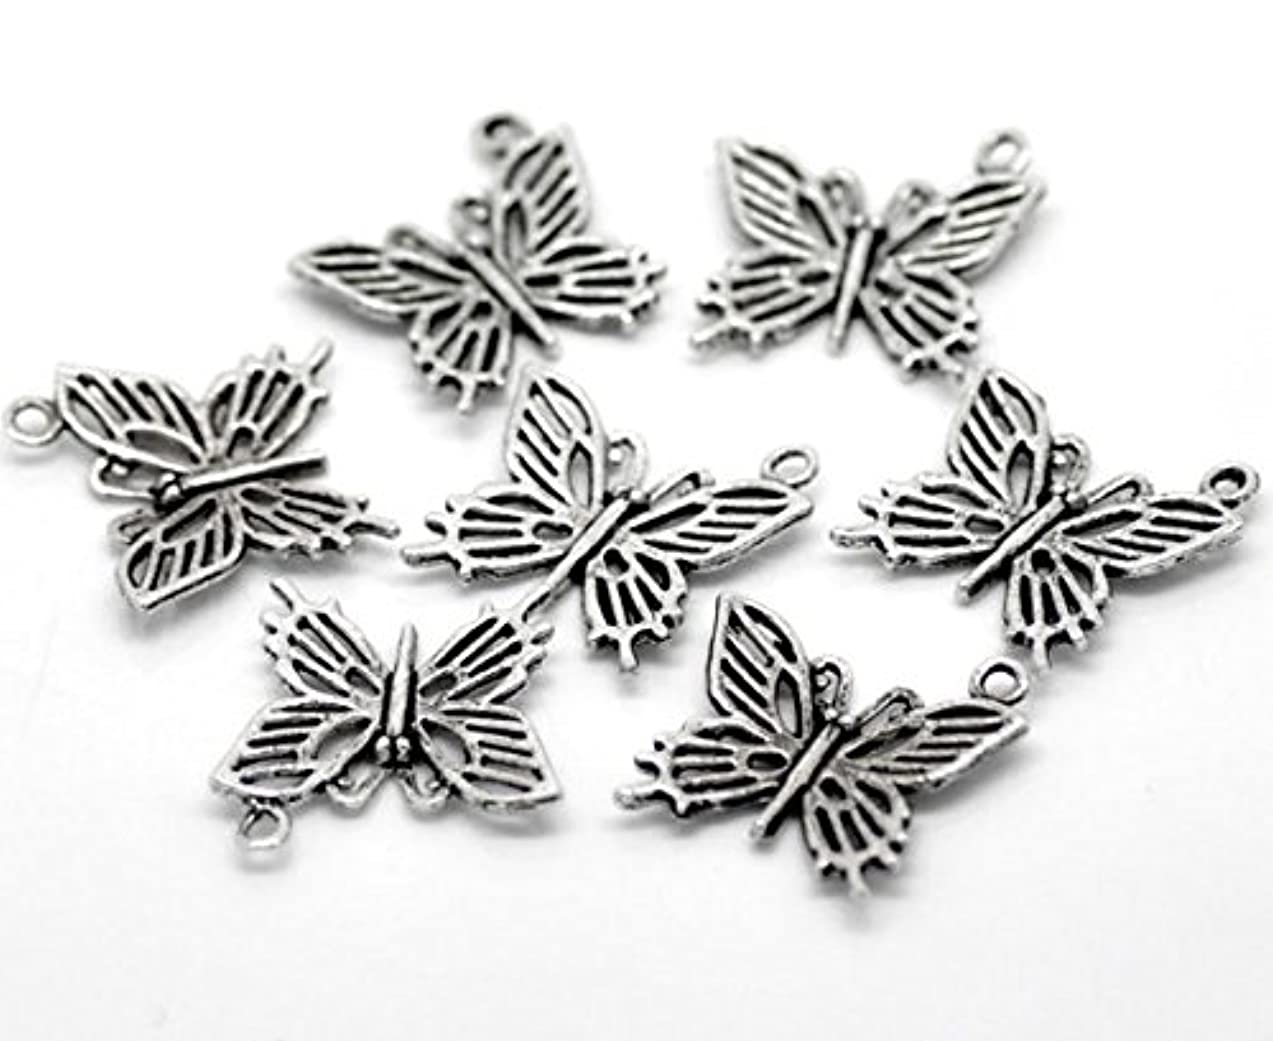 PEPPERLONELY Brand 50PC Antique Silver Butterfly Charms Pendants 20mmx20mm